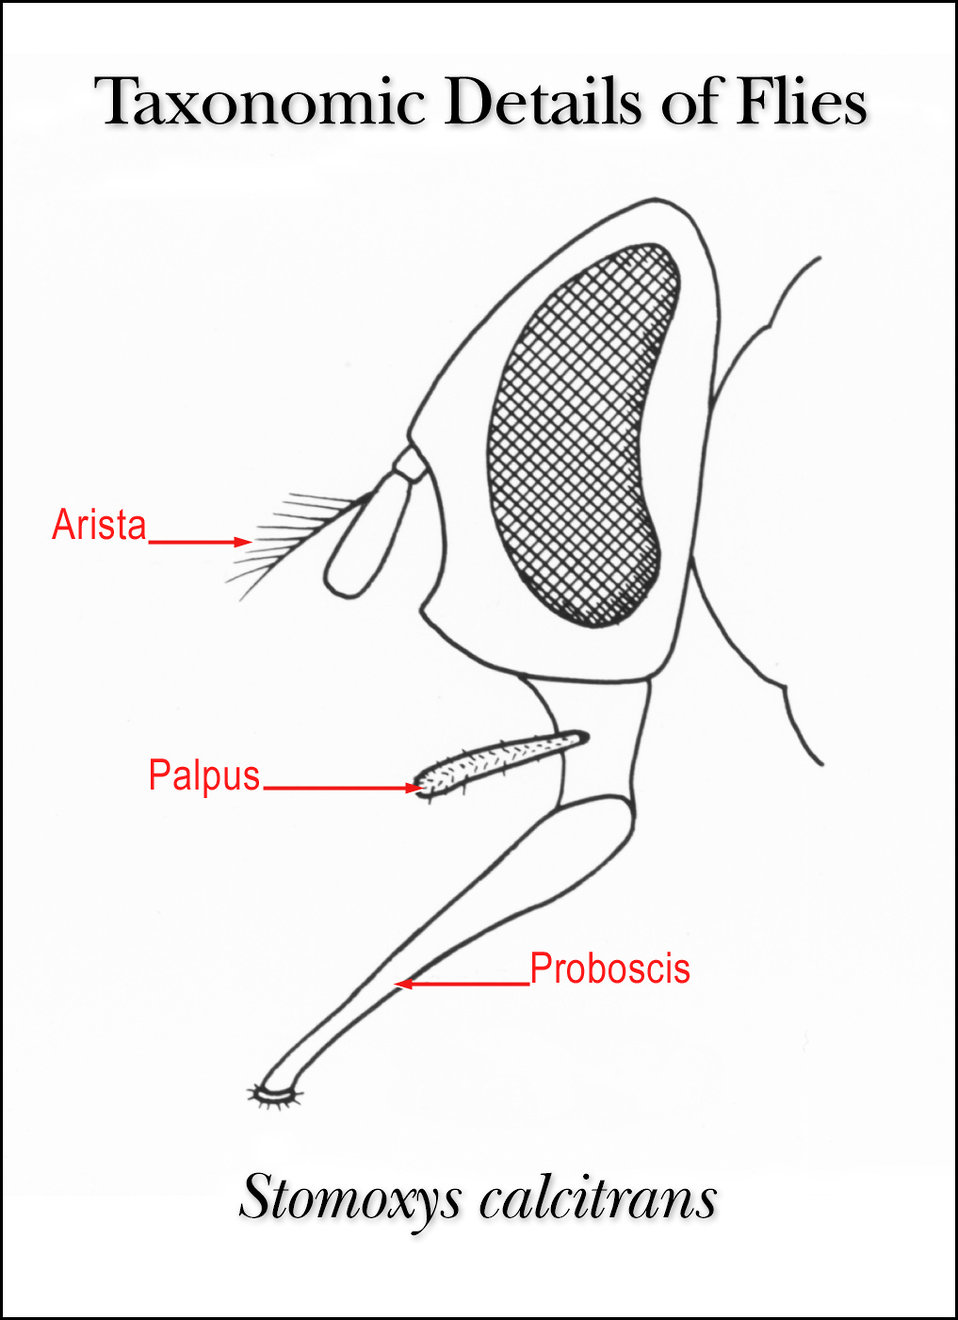 This illustration shows the taxonomic details in the head region of the fly Stomoxys calcitrans.